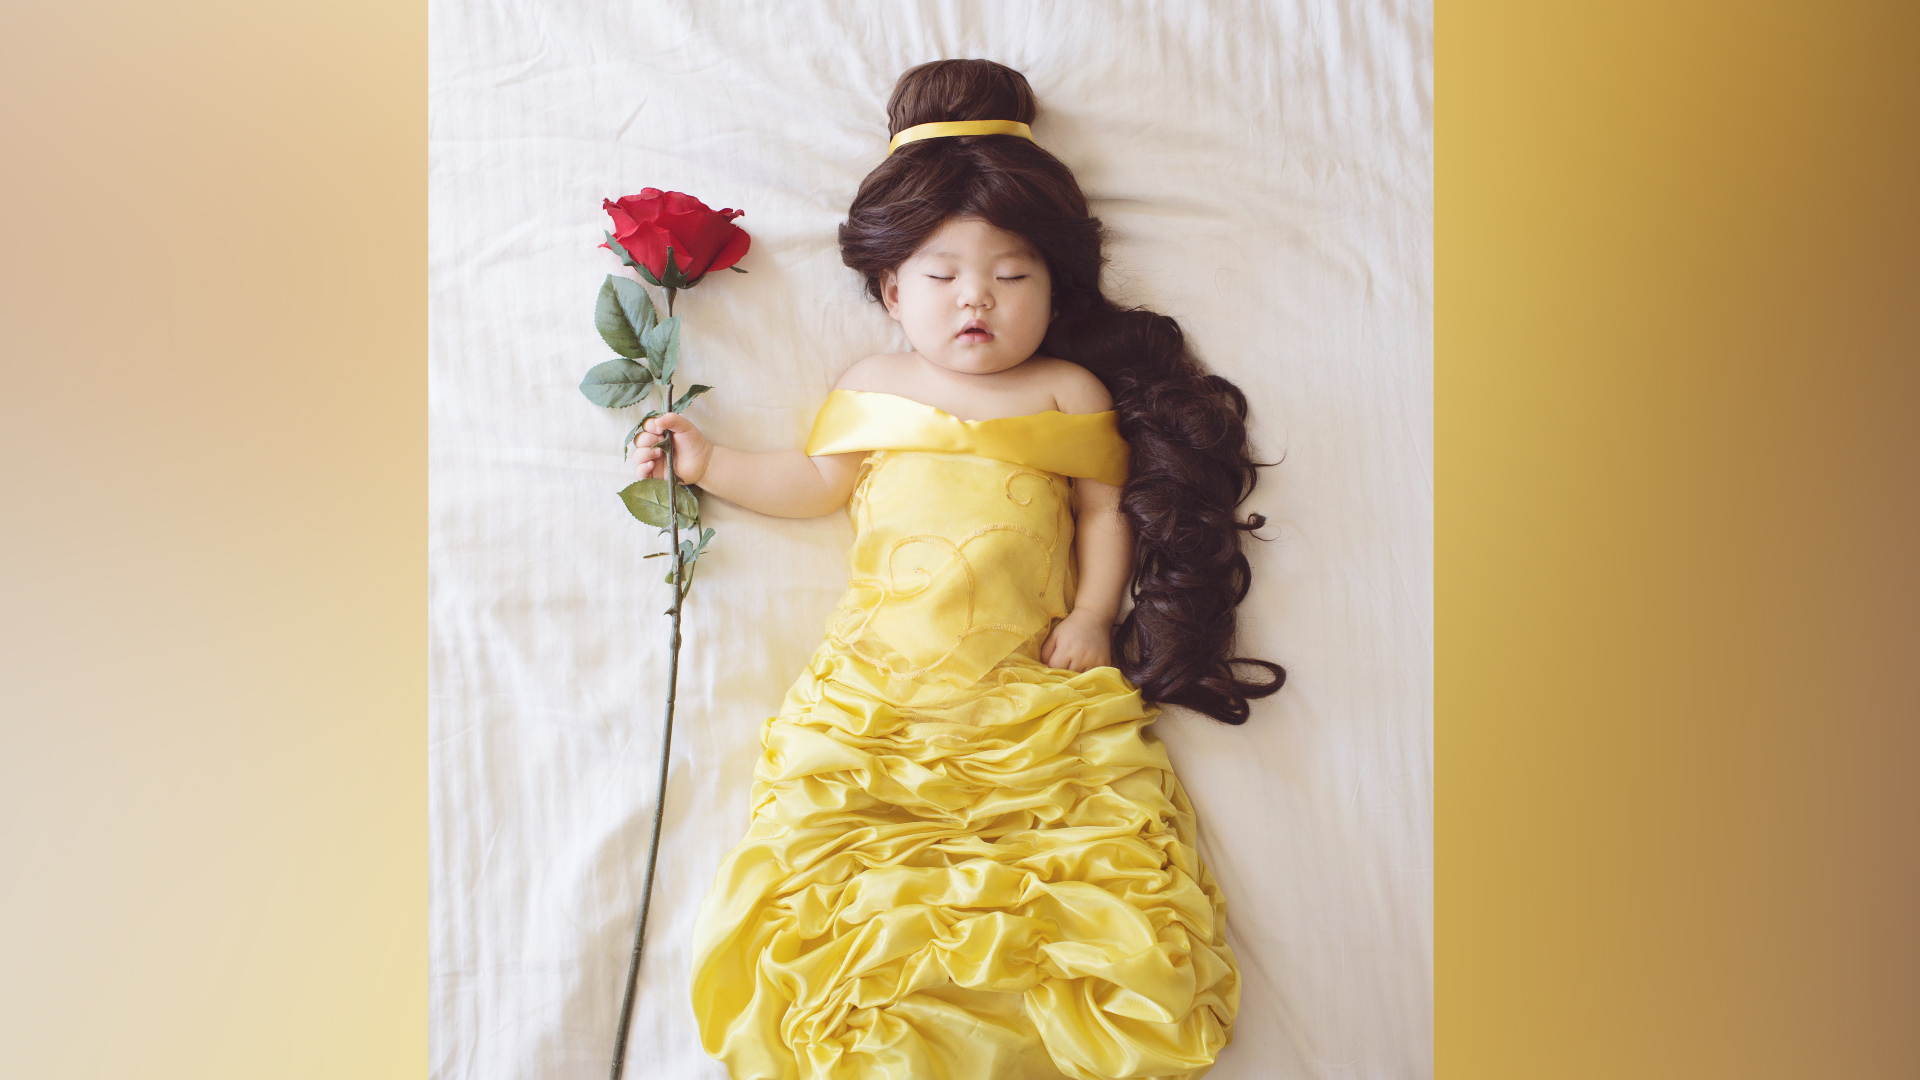 Mom Creates Photo Book Showing Nap Time Images Of Daughter